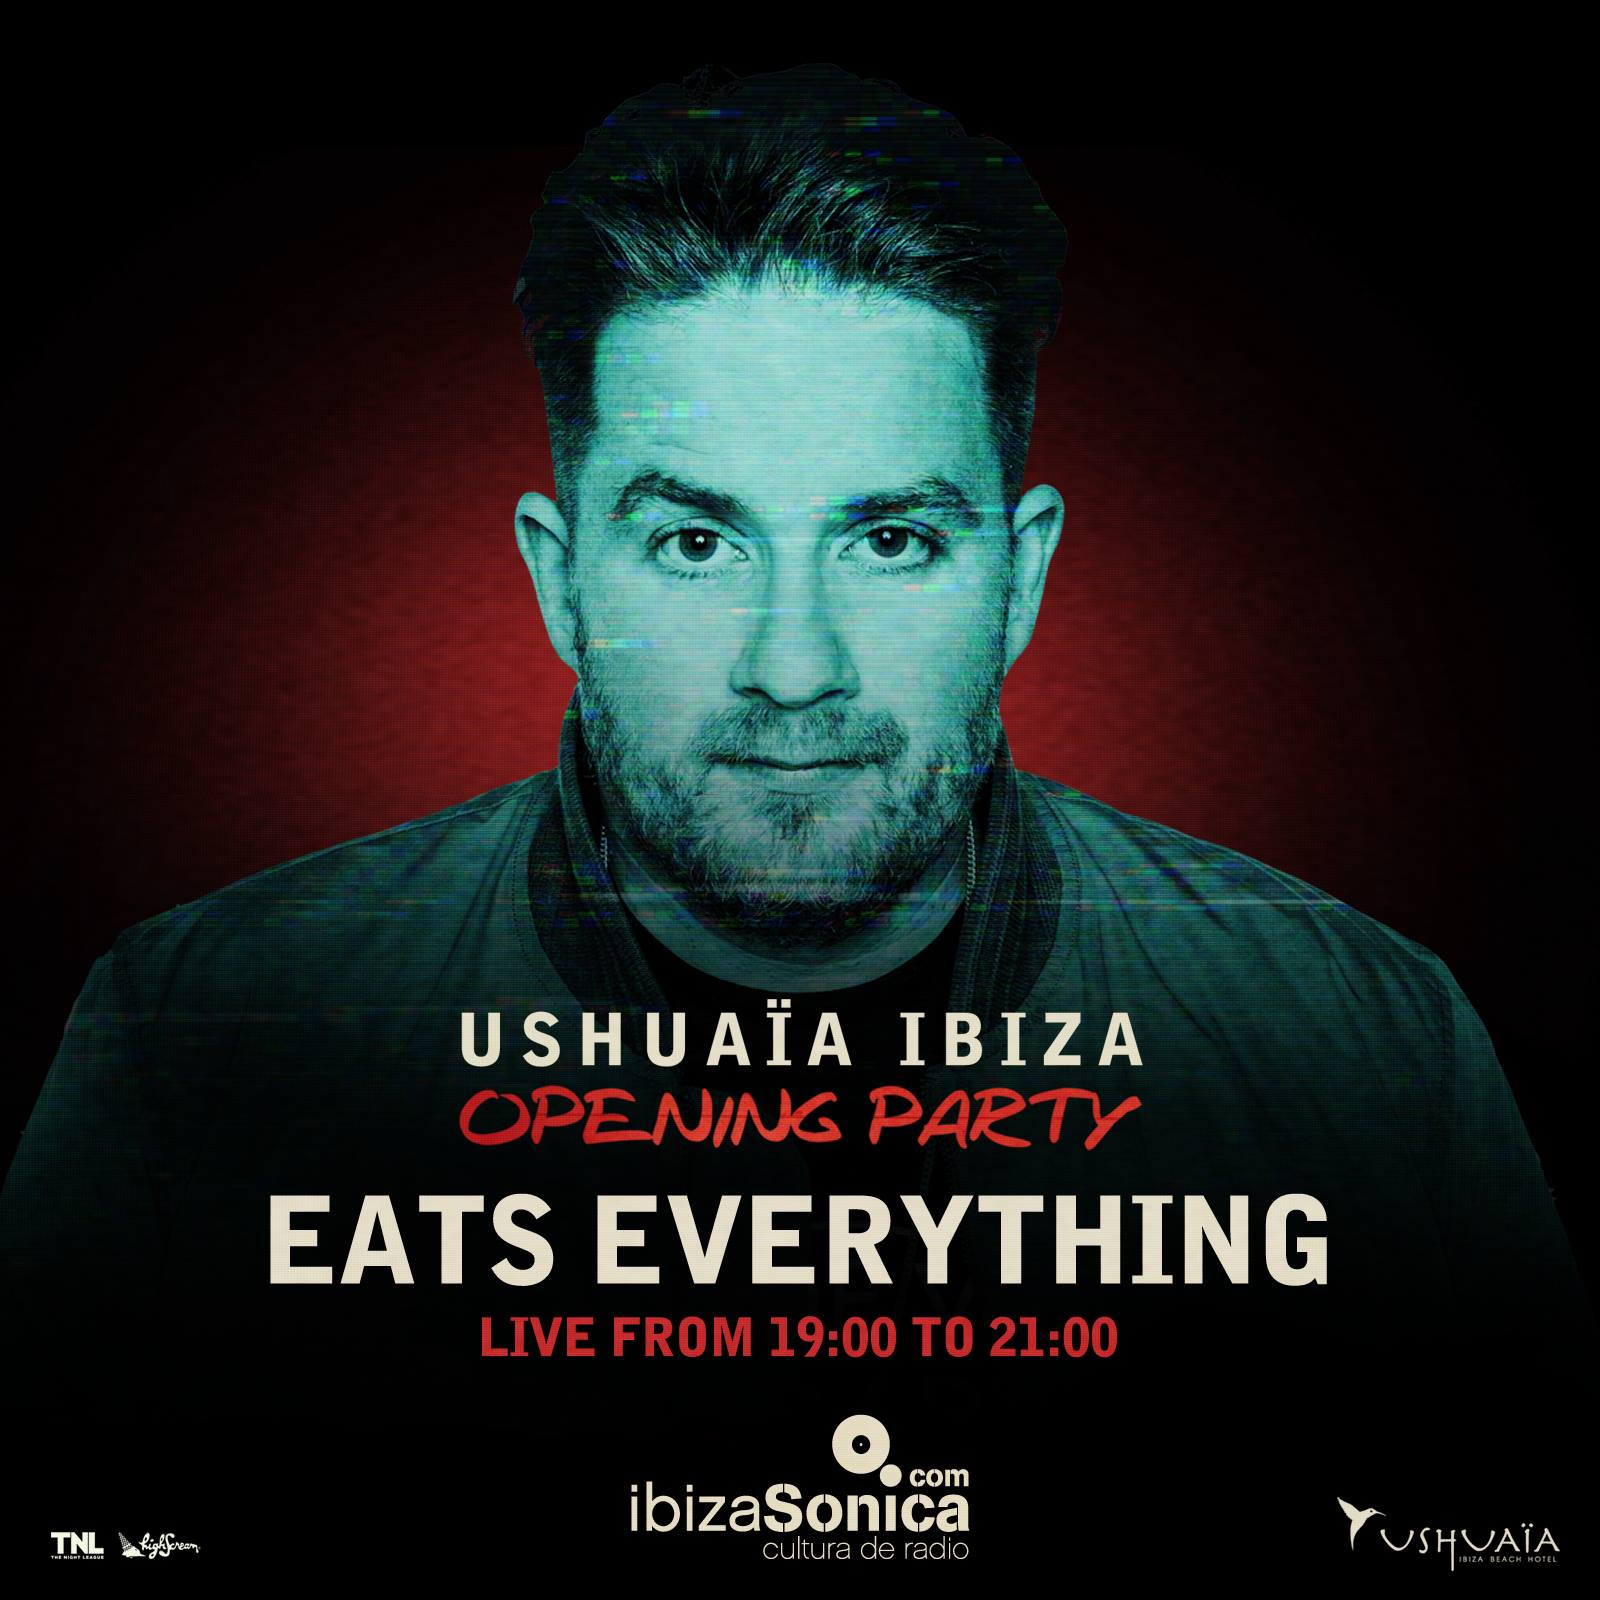 download → Eats Everything - live at Ushuaia 2017 Opening Party (Ibiza) - 27-May-2017